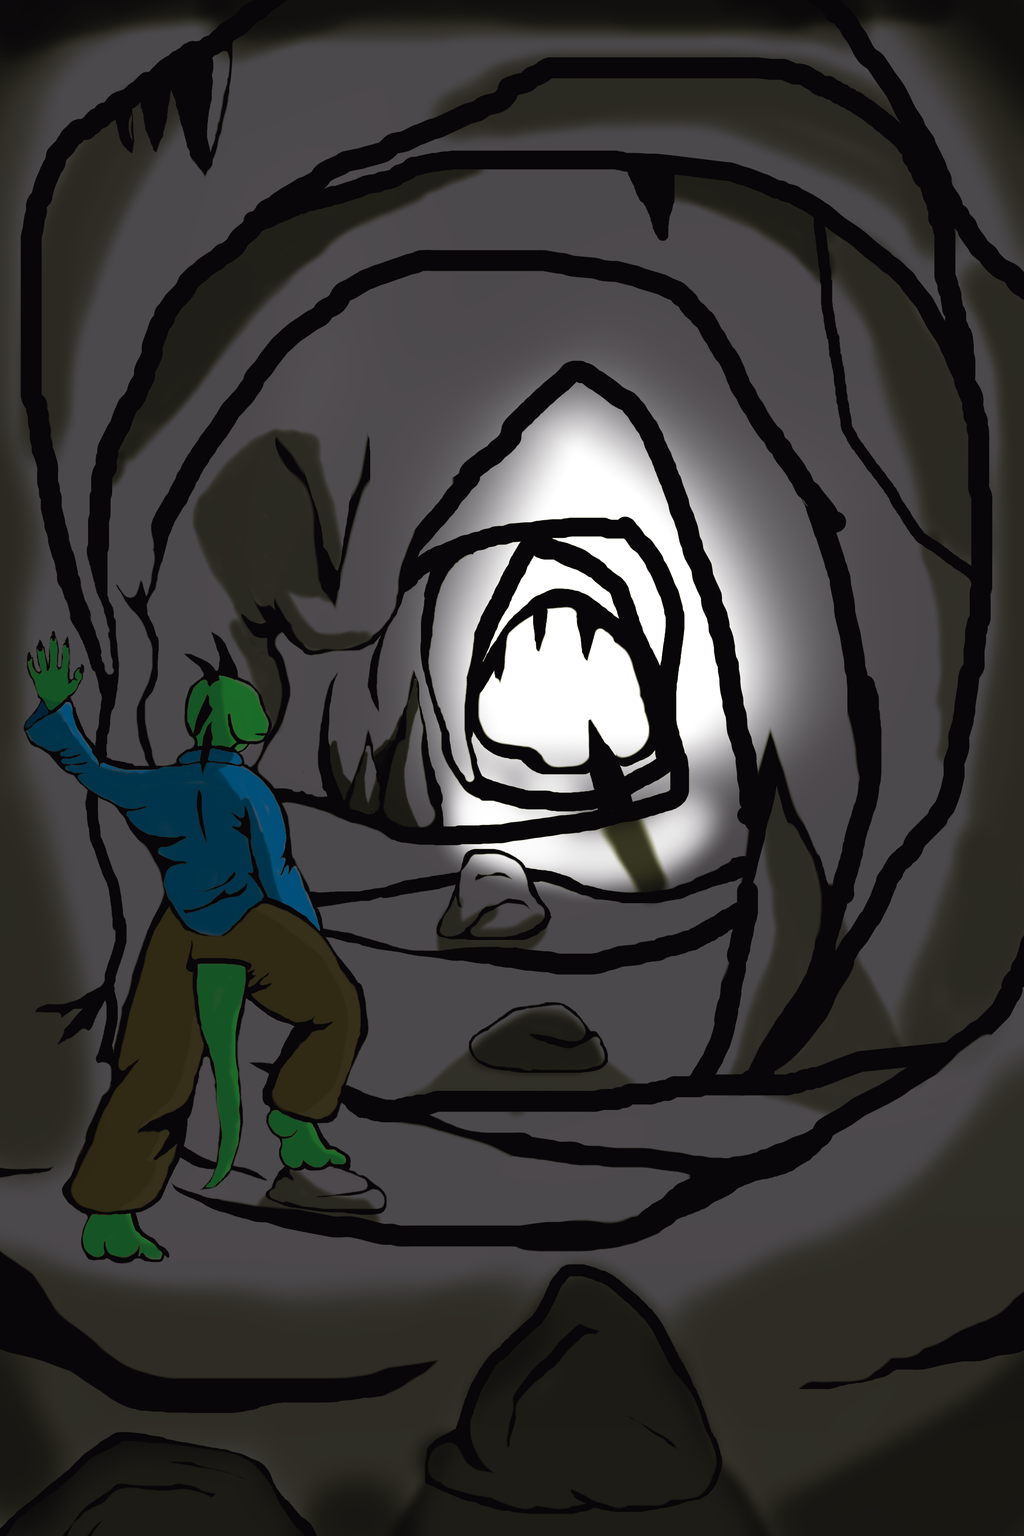 The end of the tunnel (digital experiment series 1)